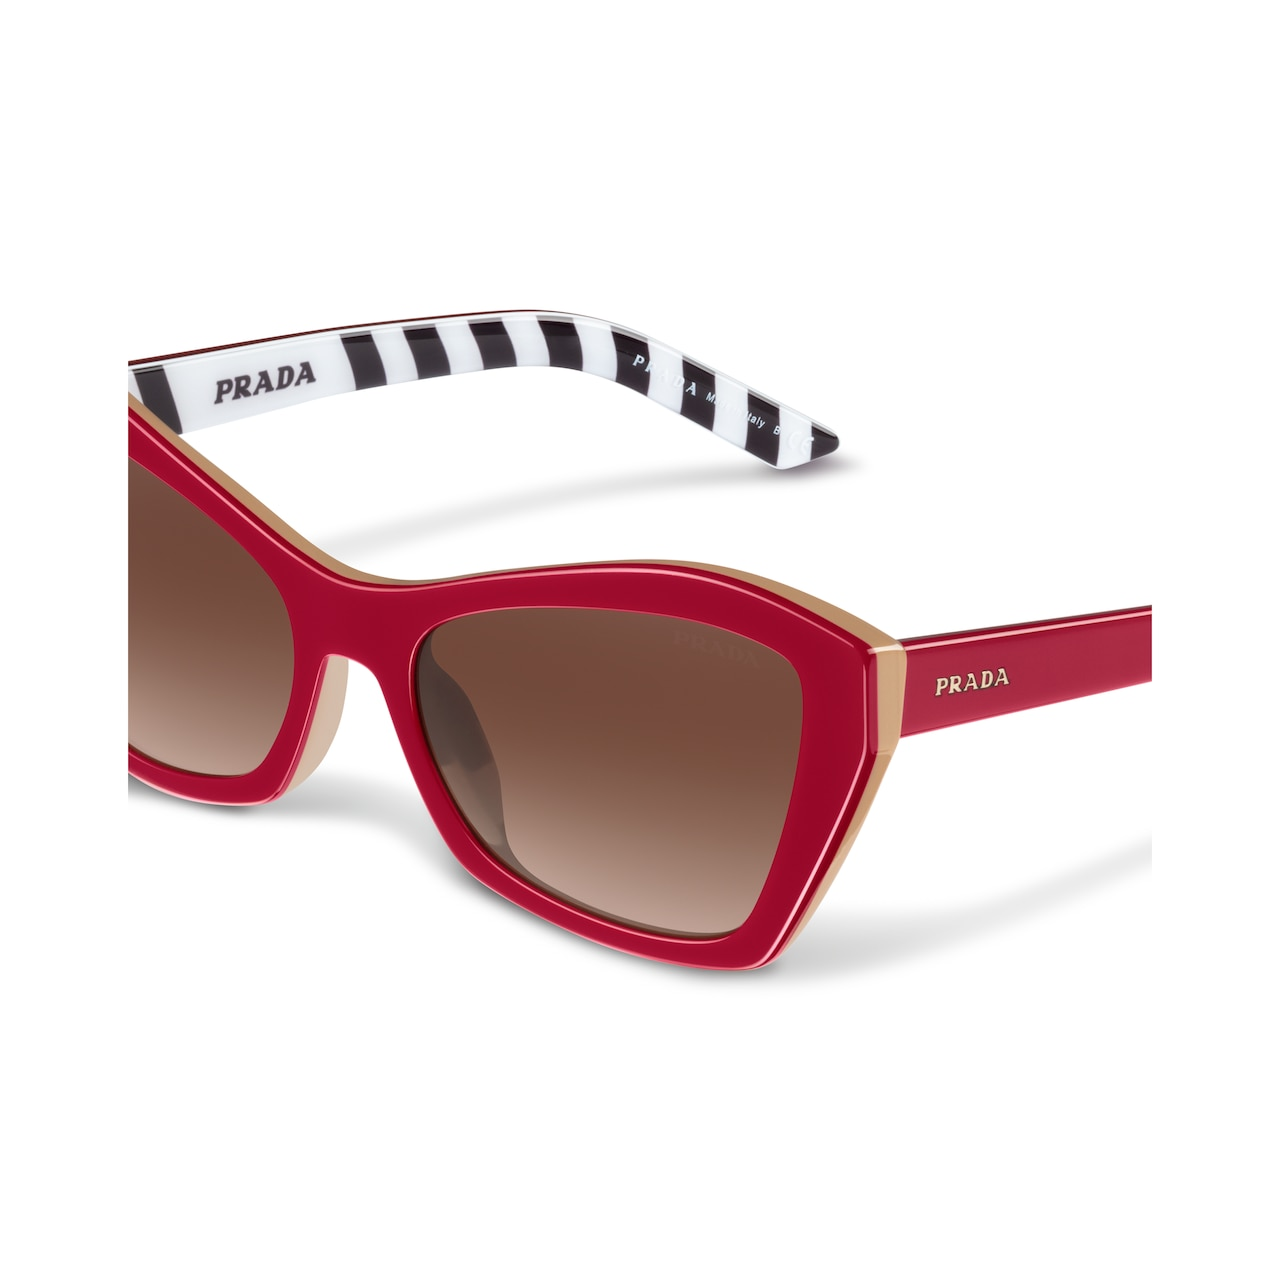 Prada Prada Disguise sunglasses Alternative fit 5